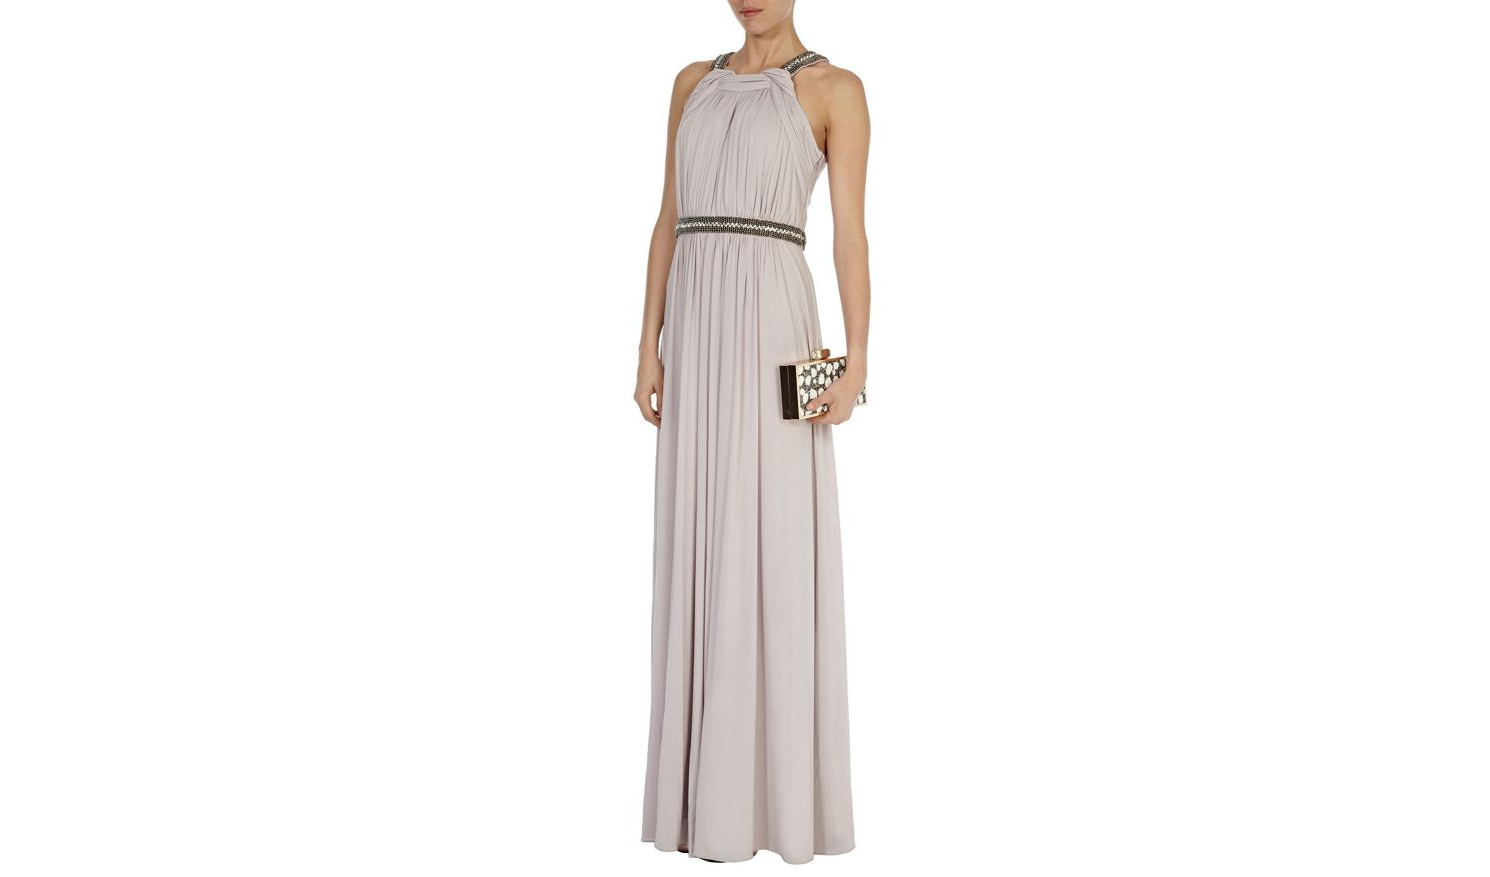 Oyster Maxi dress. coast. 175.00 down to 115.00 in sale. Oct 2014 ...